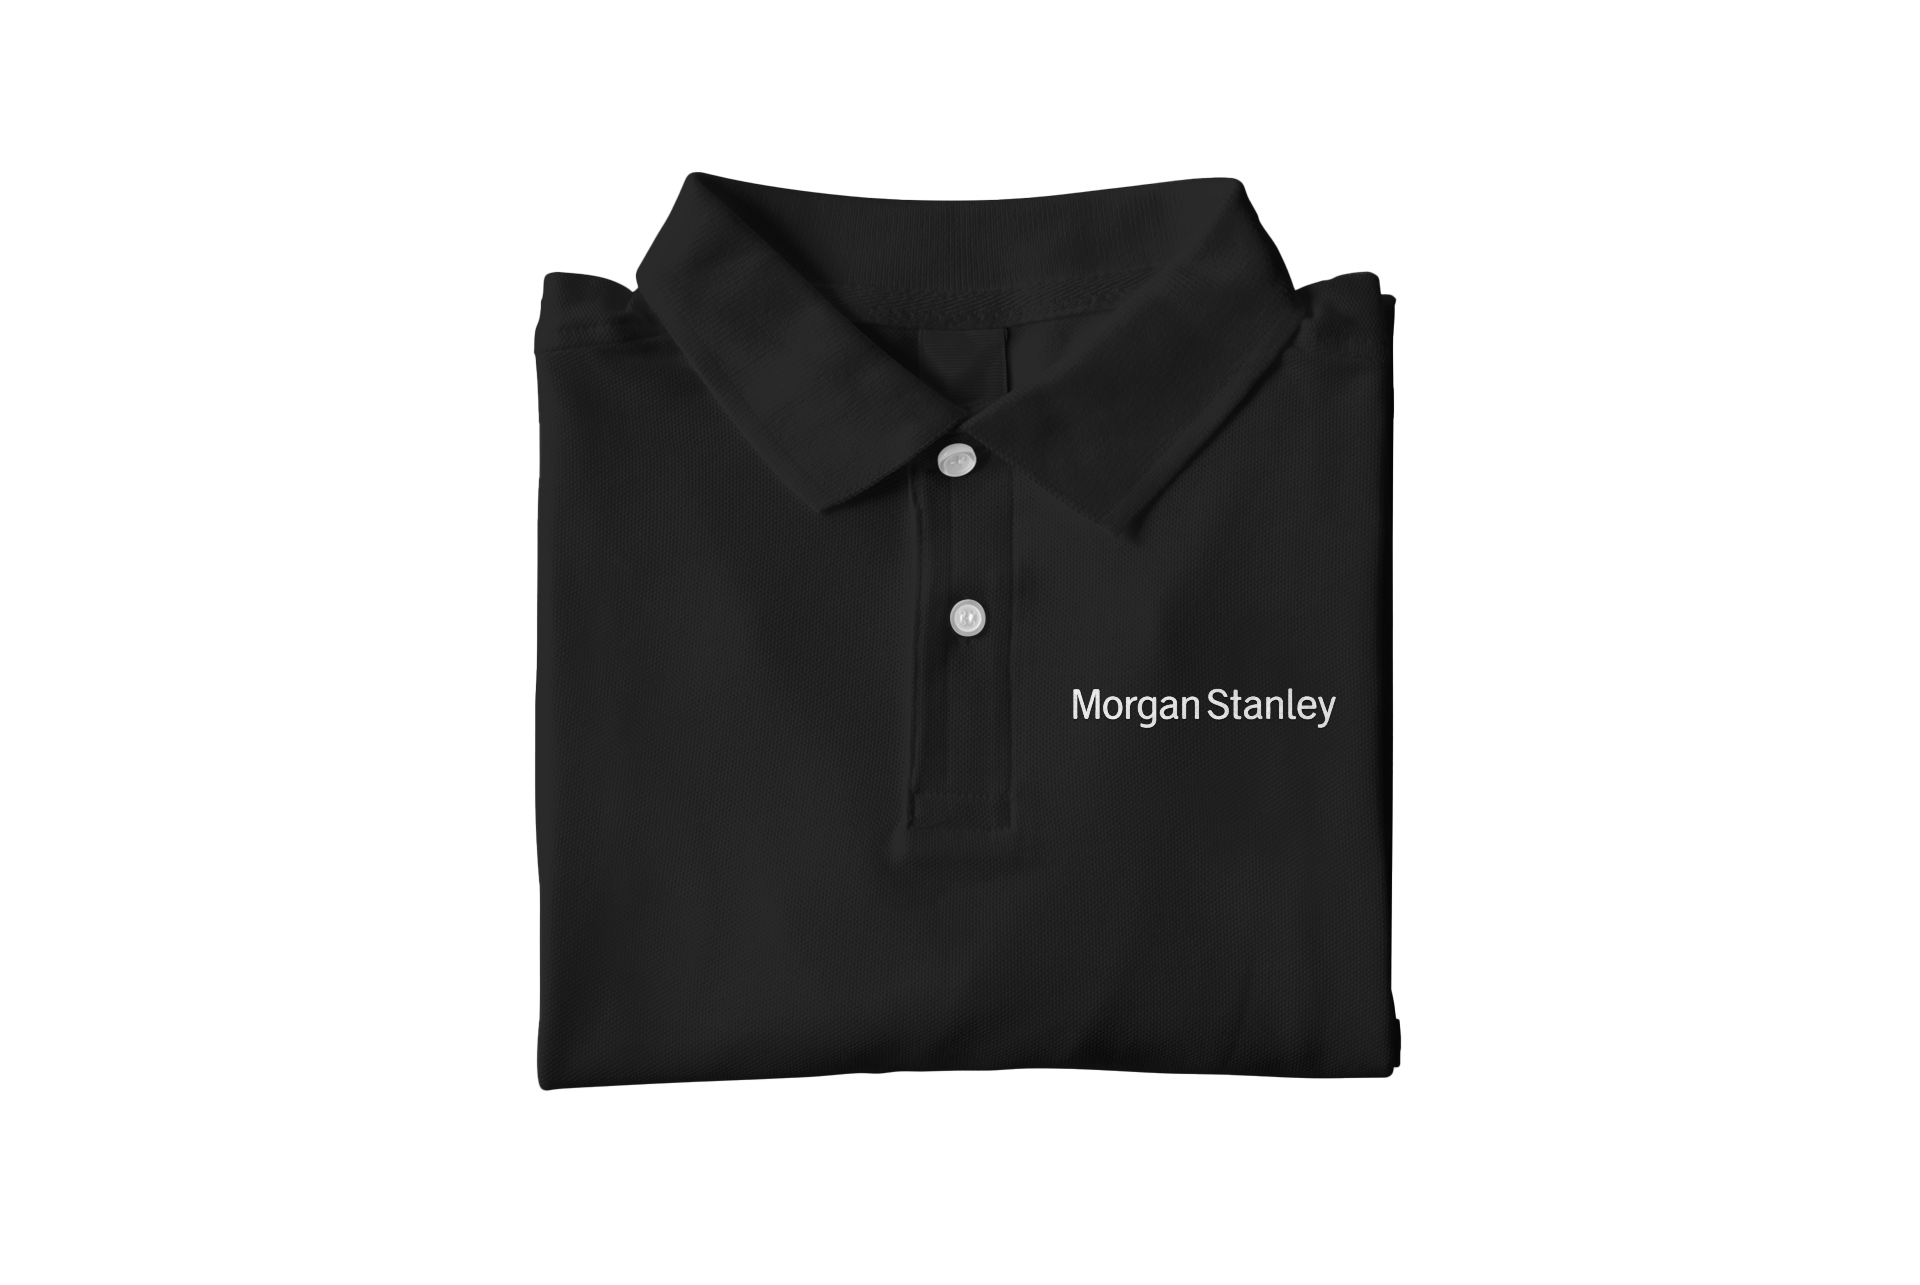 Morgan Stanley - Polo Shirt